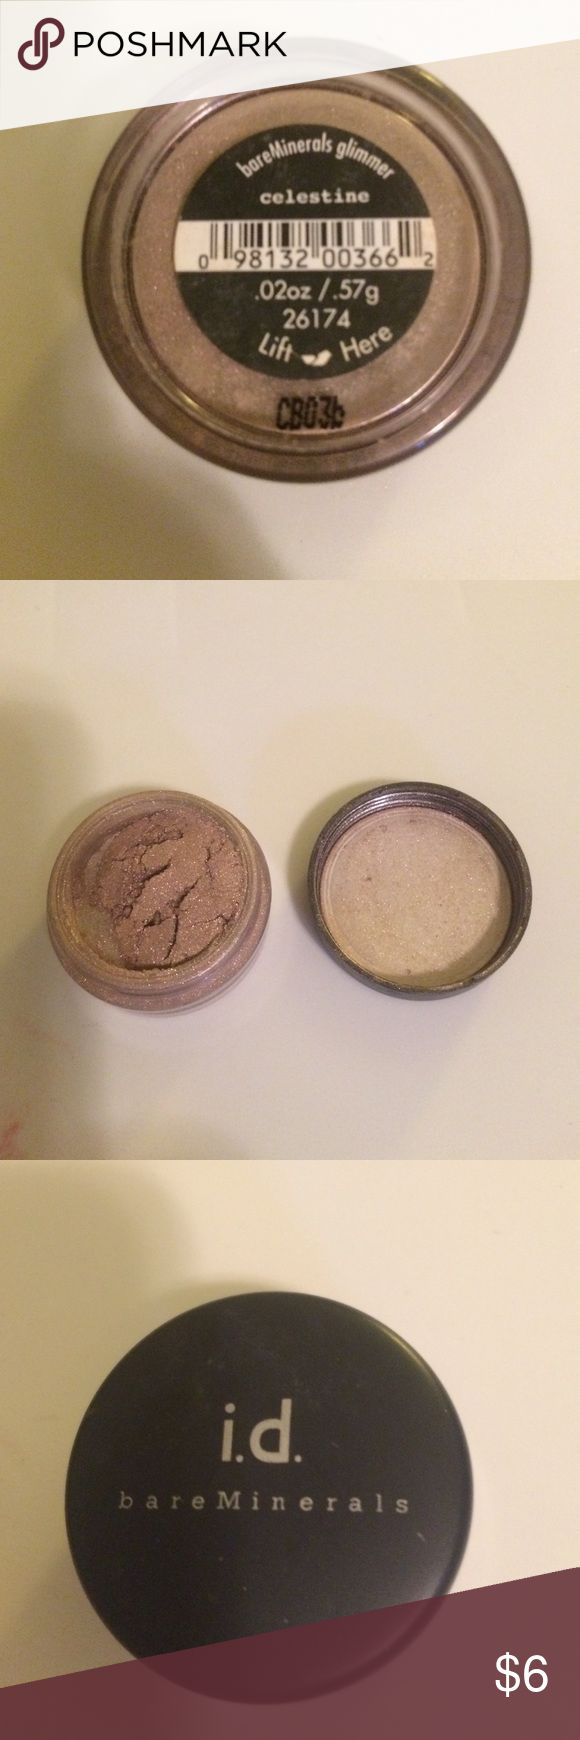 Bare minerals glimmer eye shadow in Celestine Barely used bareMinerals Makeup Eyeshadow